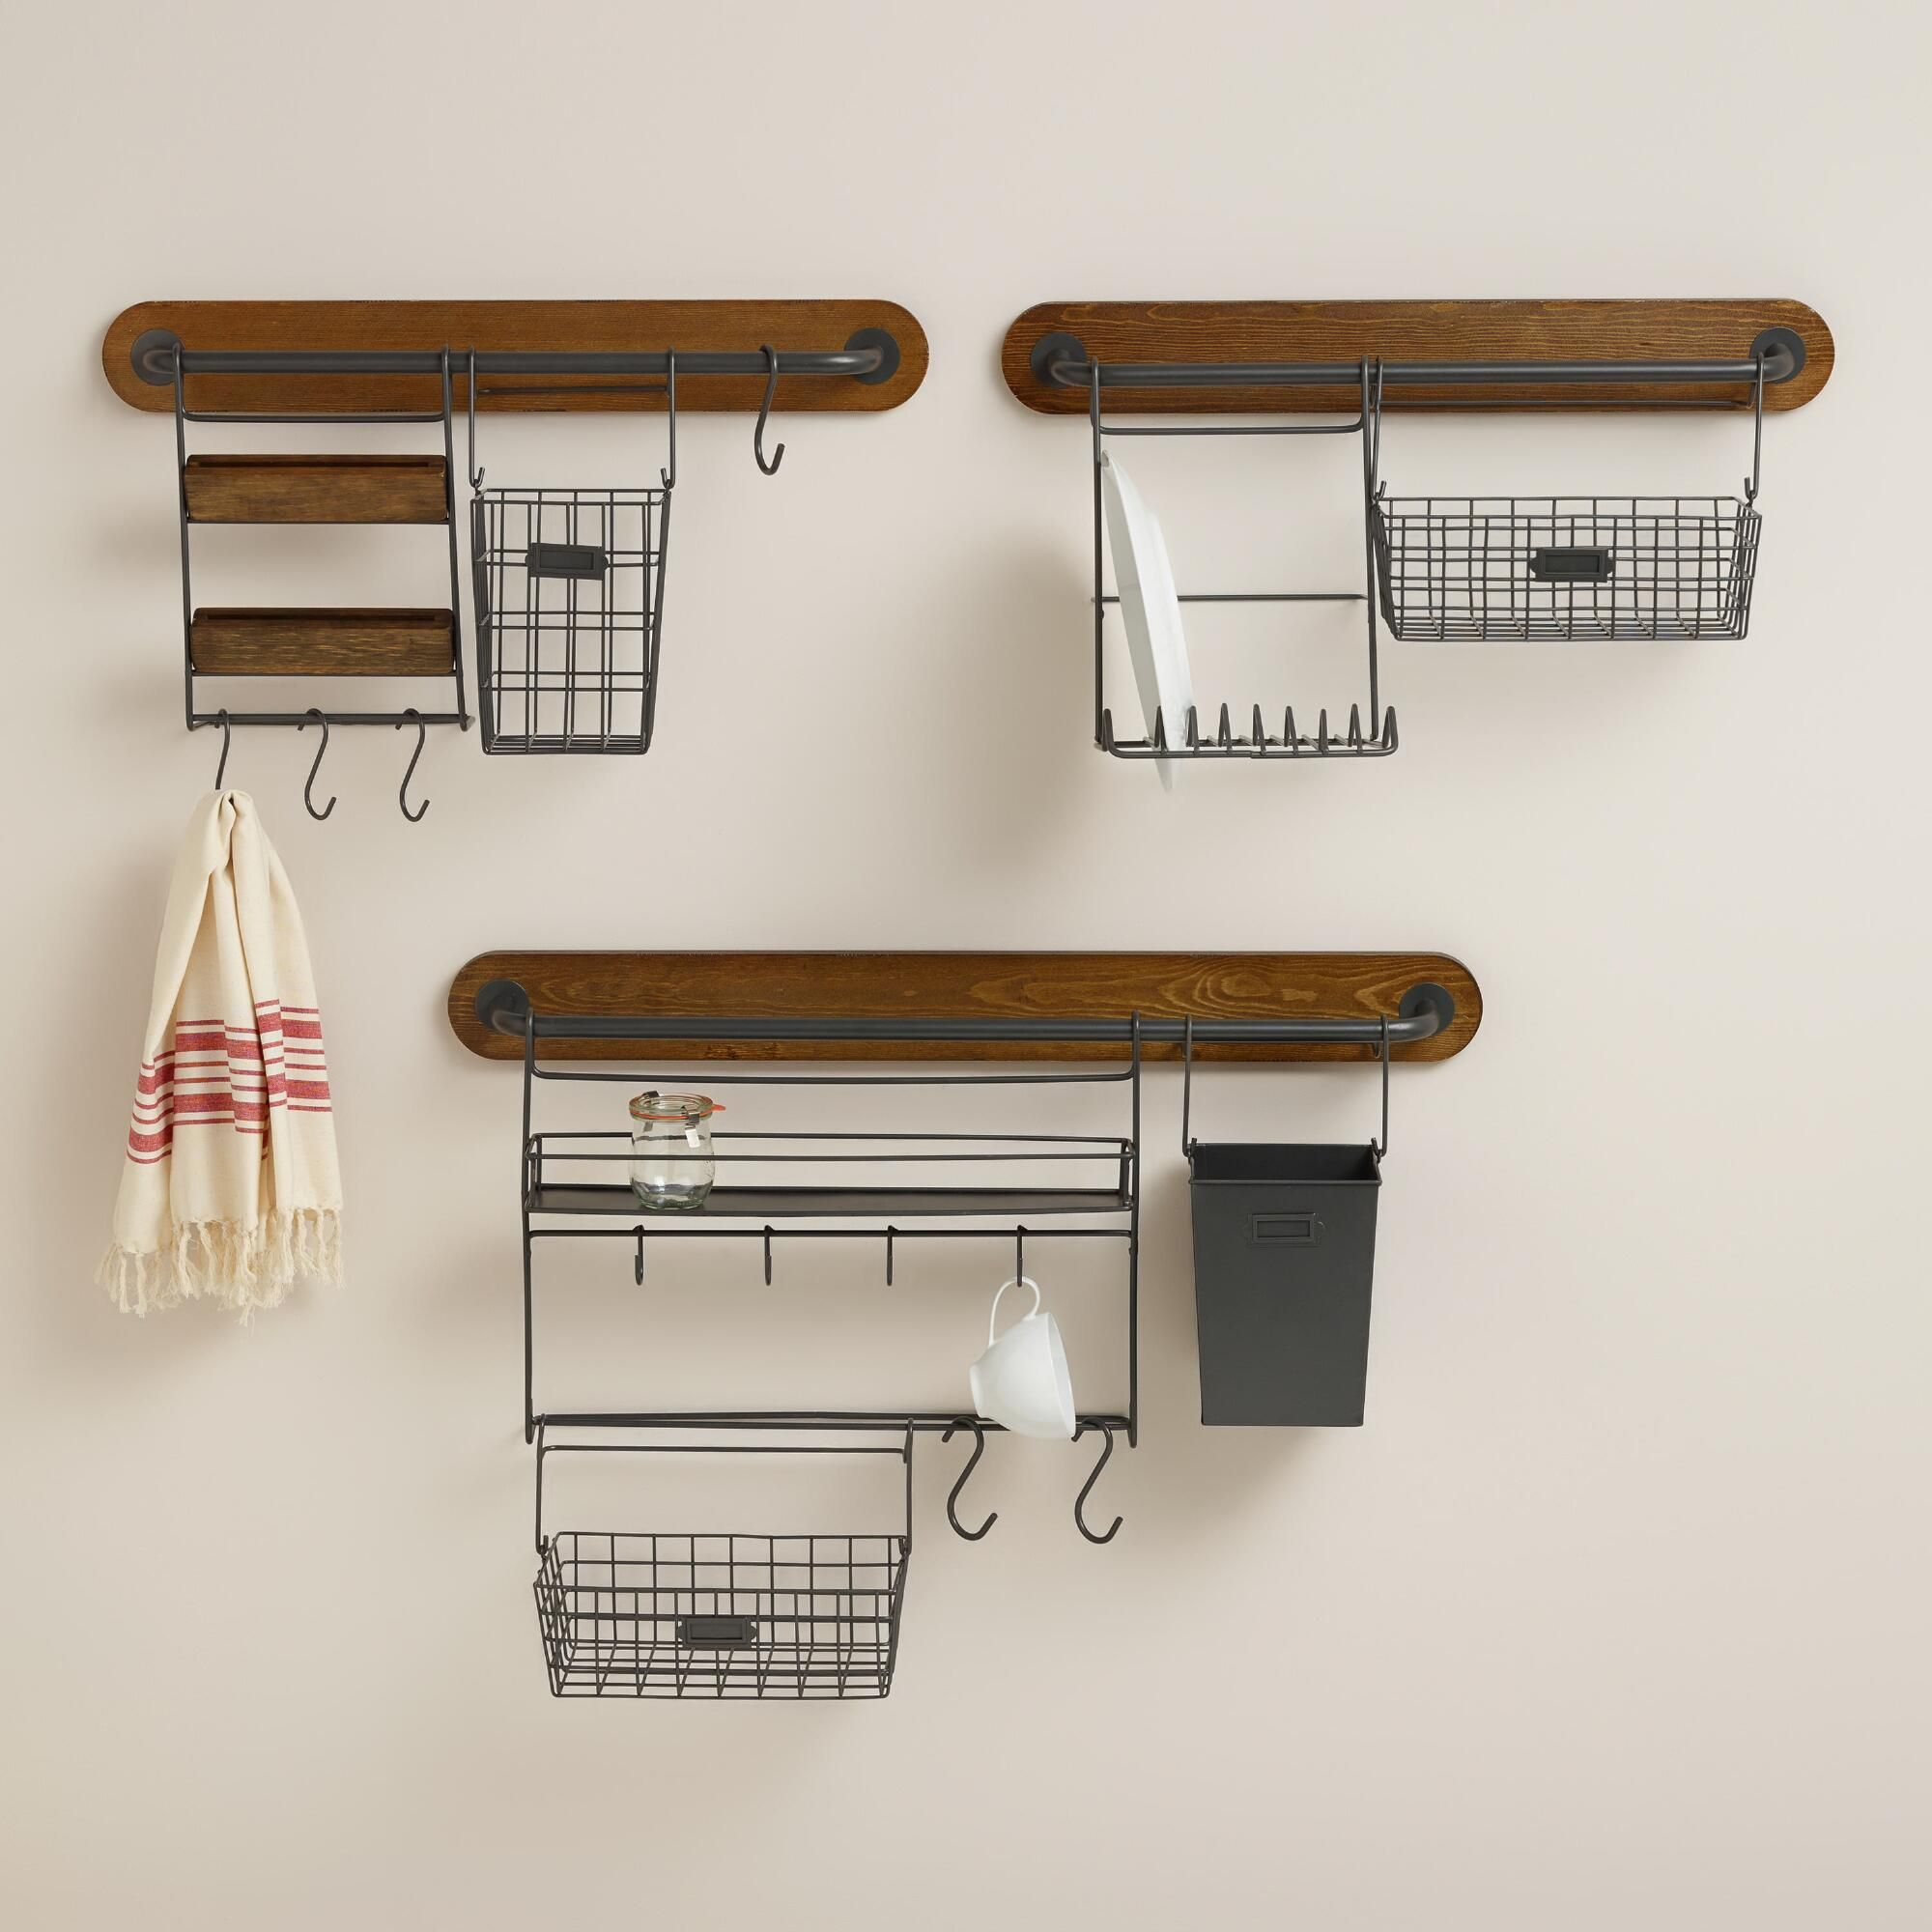 redefine your kitchen storage aesthetic with our space saving